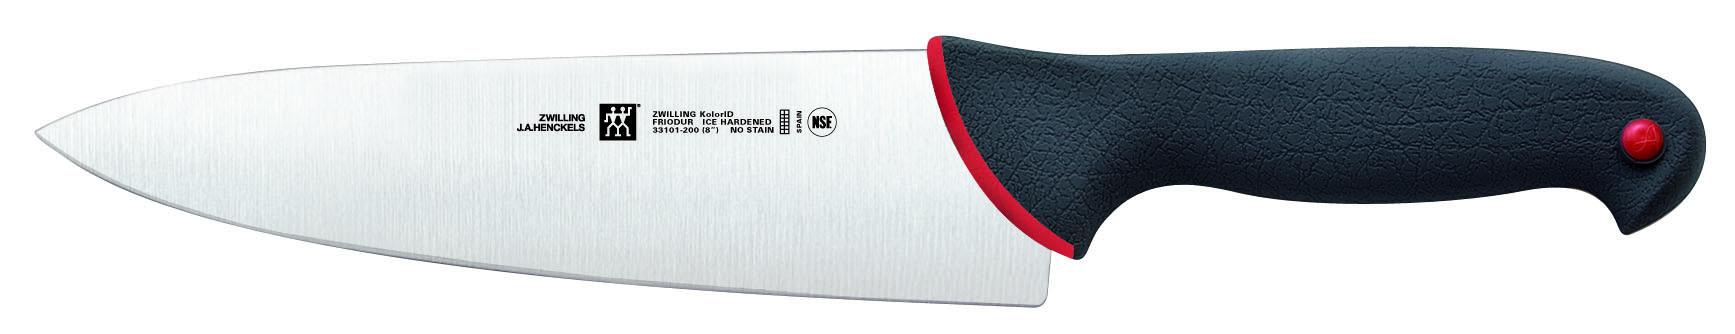 "Zwilling J A Henckels KolorID 8"" Chef's Knife"